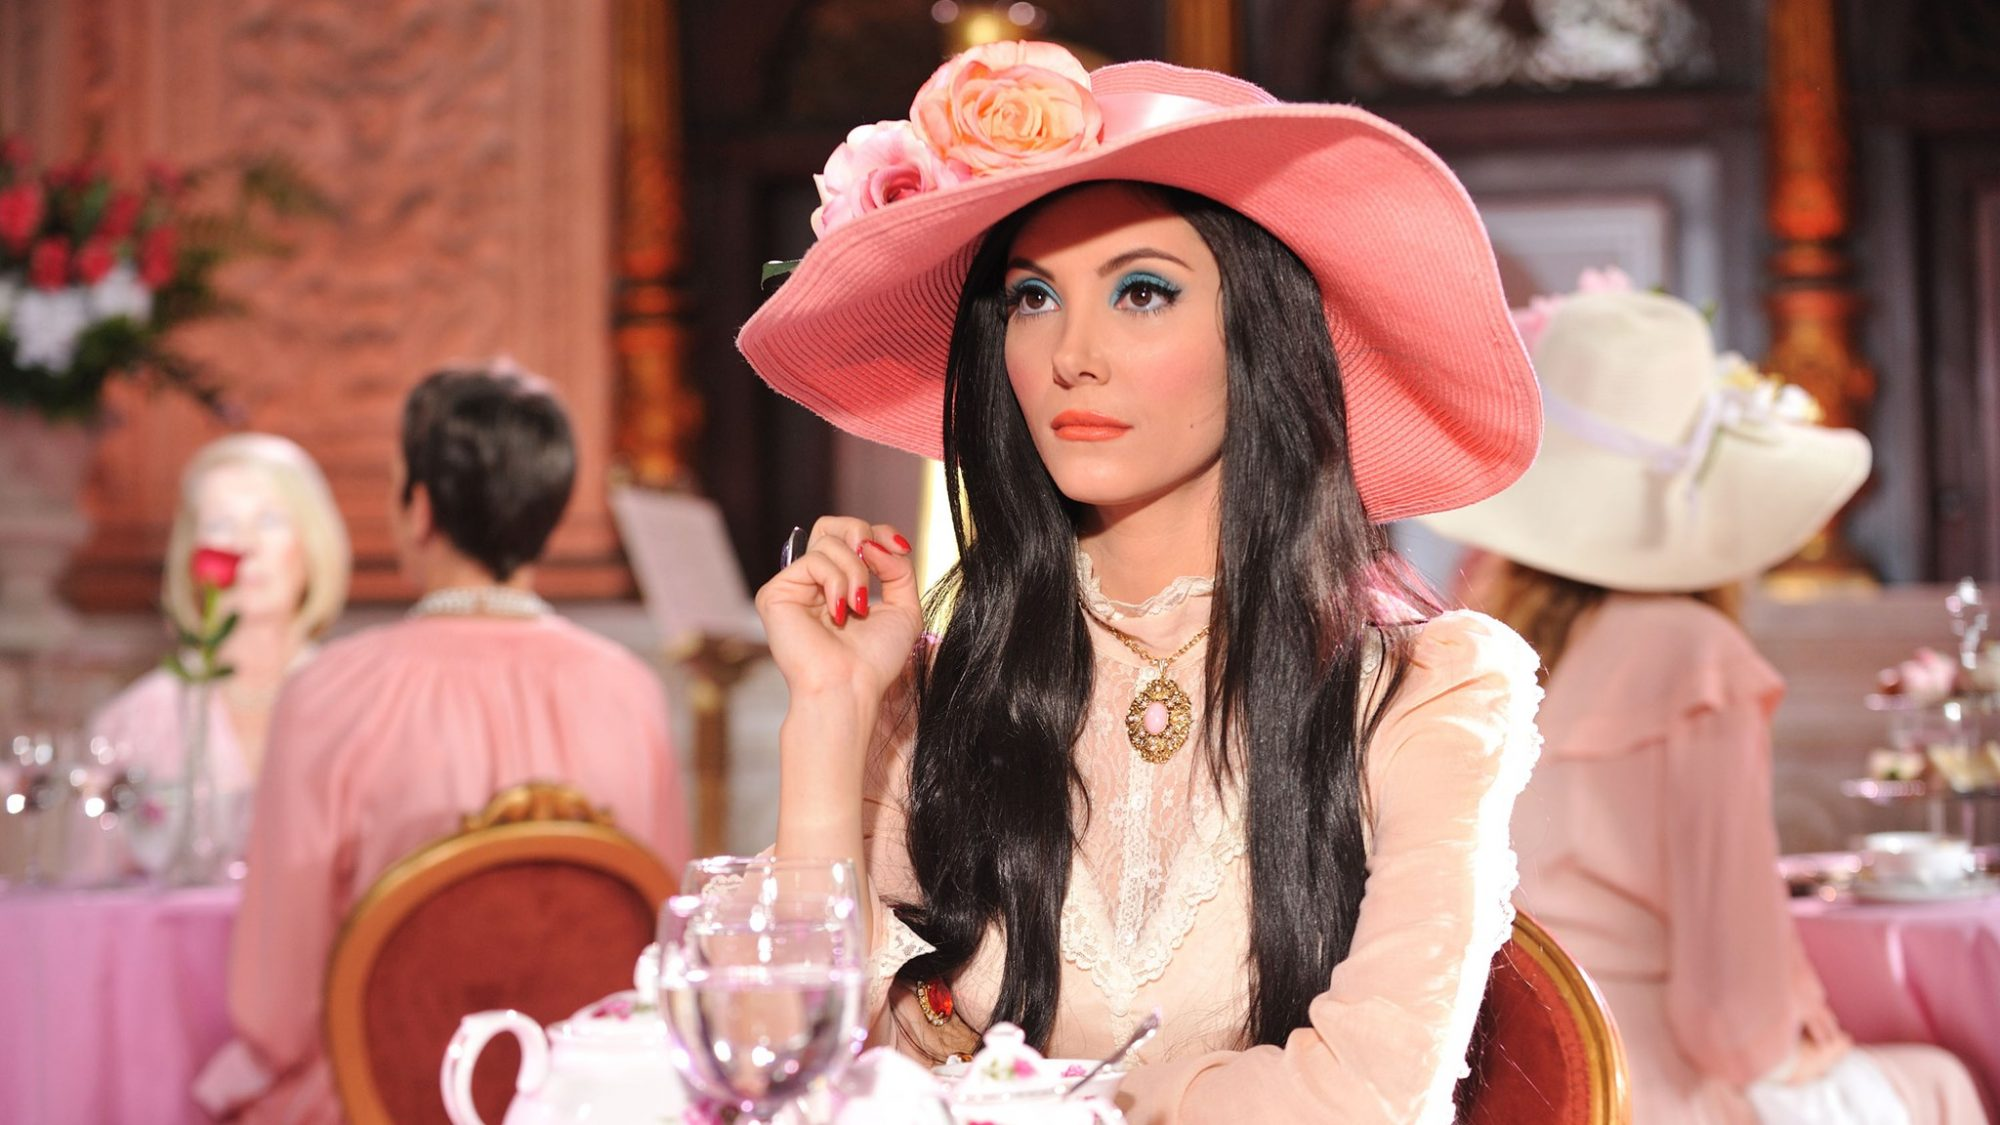 EC: How 'The Love Witch' Director Anna Biller Does Breakfast